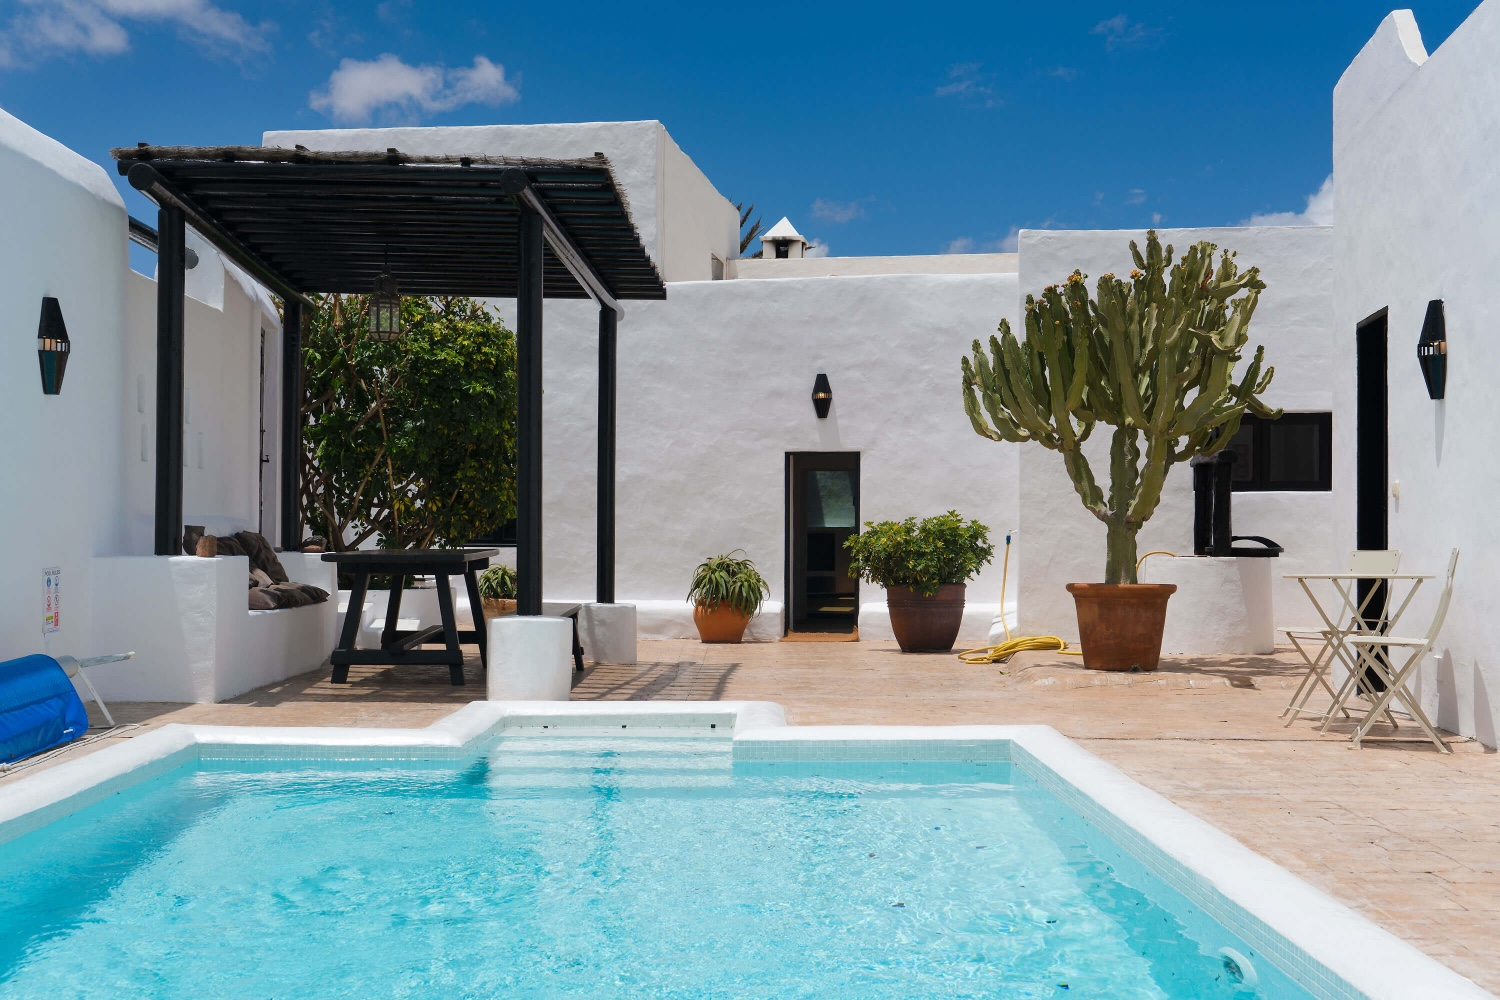 Holiday villa with private heatable pool and an ideal location to explore the rest of the island of Lanzarote